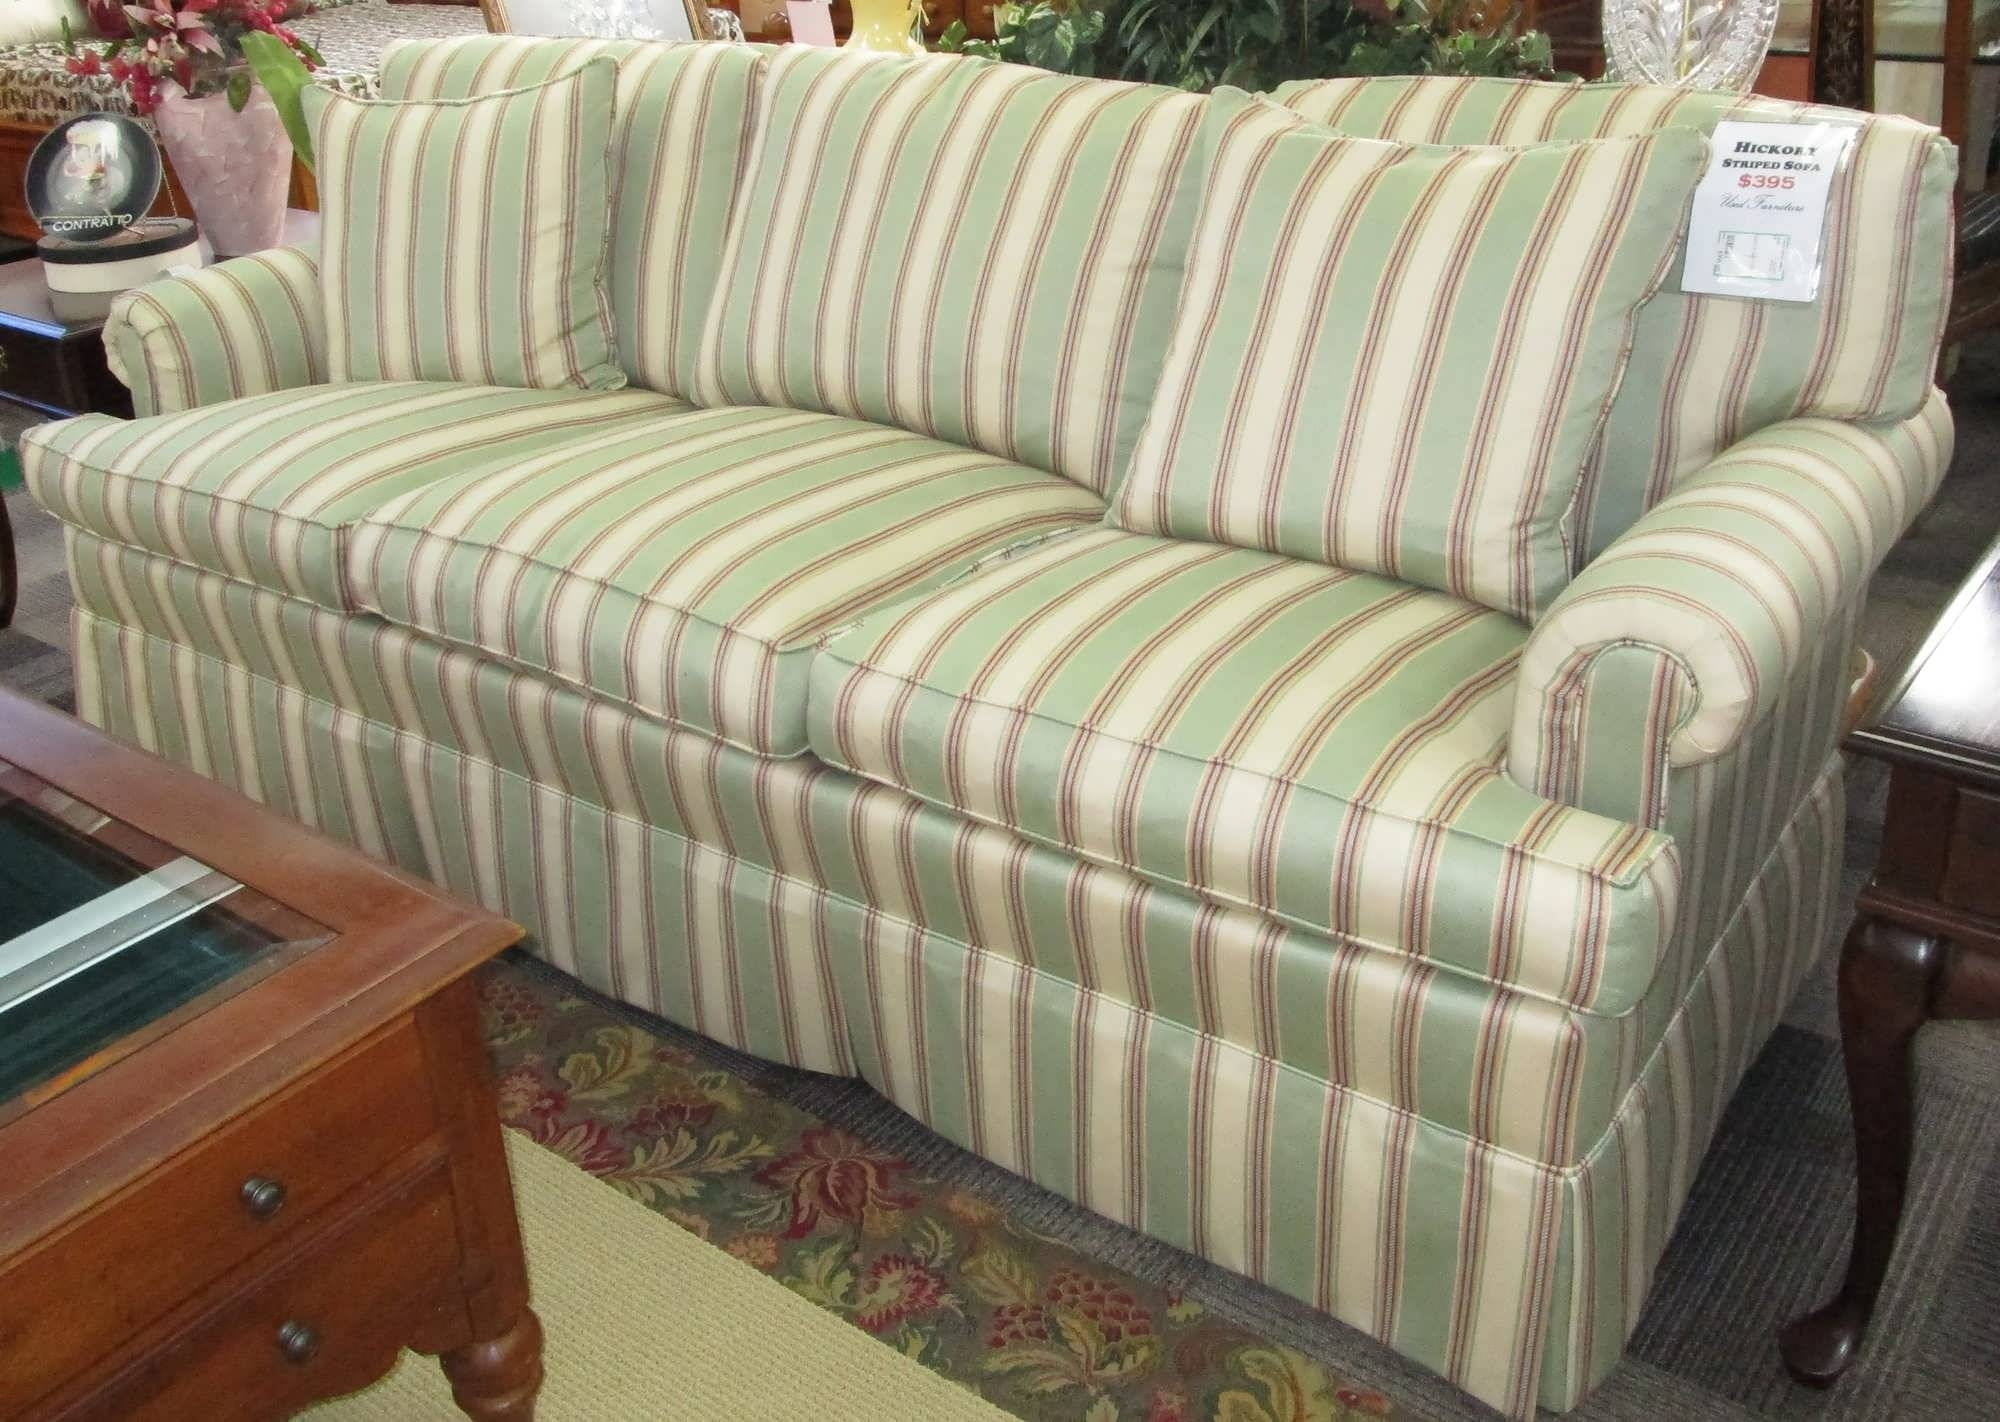 Sofa : Designer Sofas Brocade Sofa Classic White Sofa Brown for Brocade Sofas (Image 9 of 15)